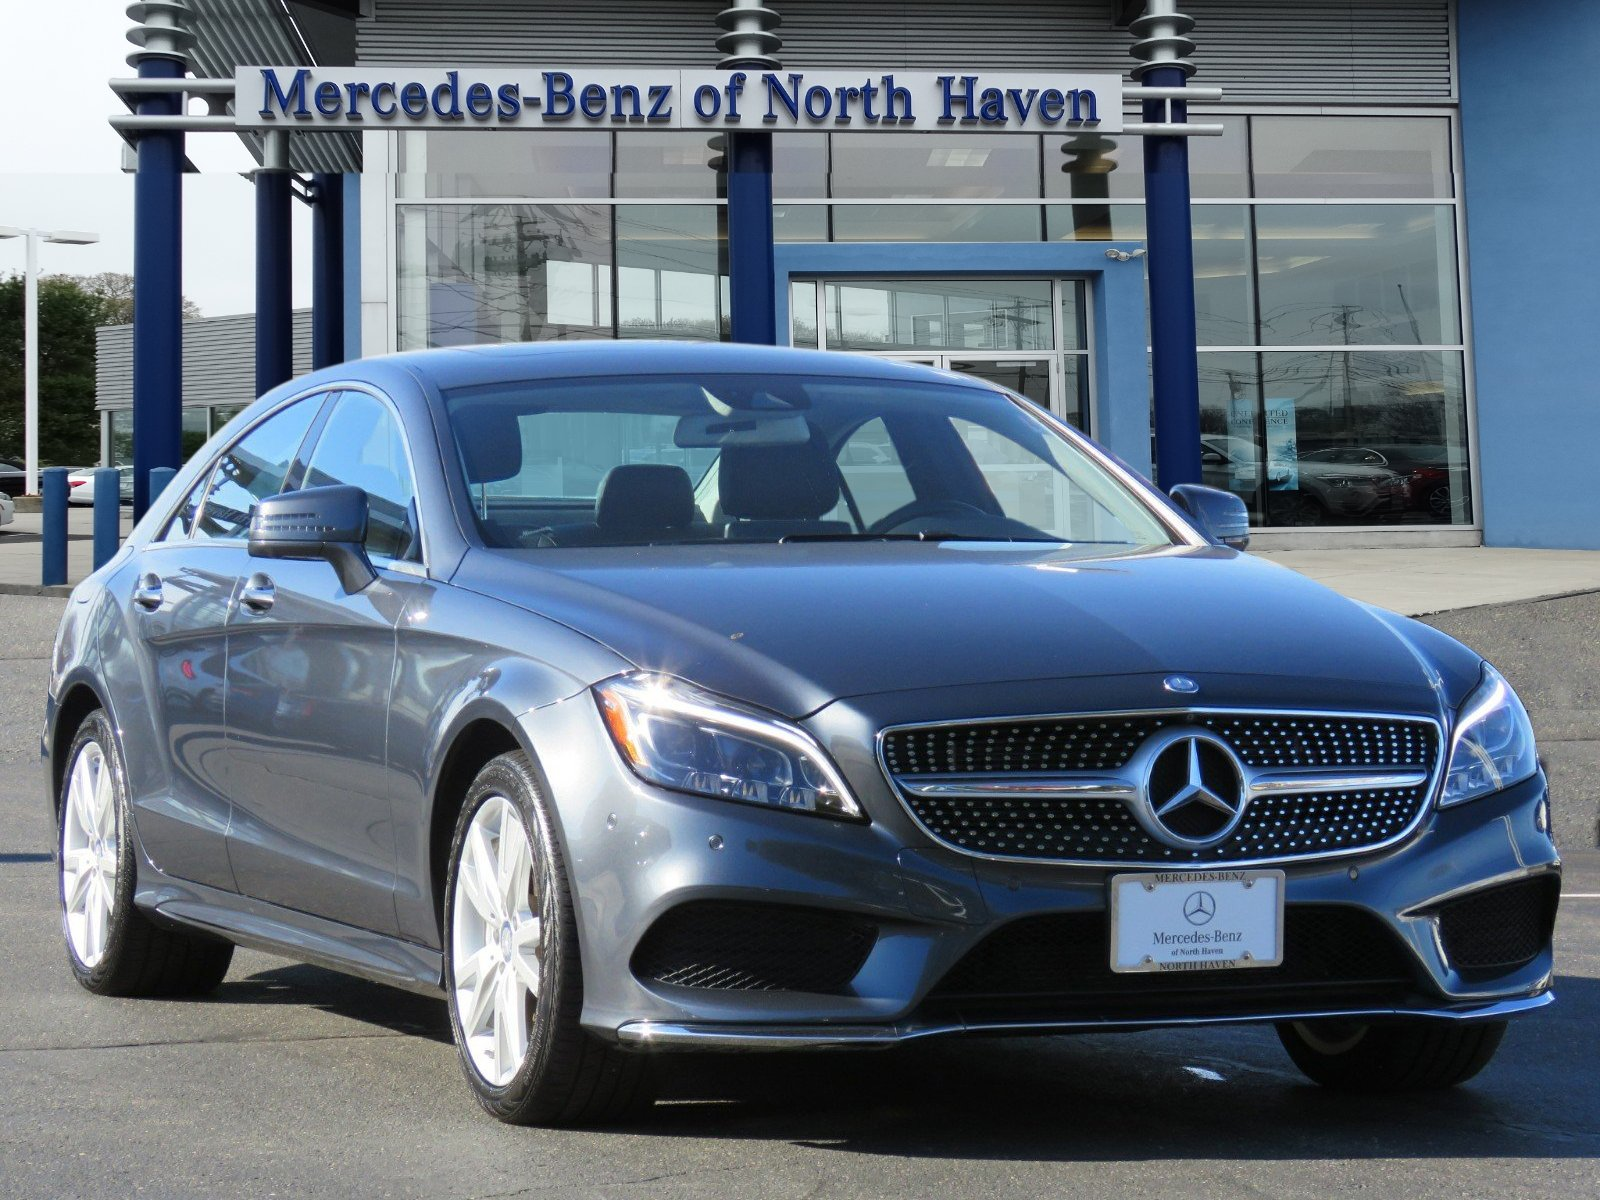 Certified Pre Owned 2015 Mercedes Benz CLS CLS 550 Coupe in North